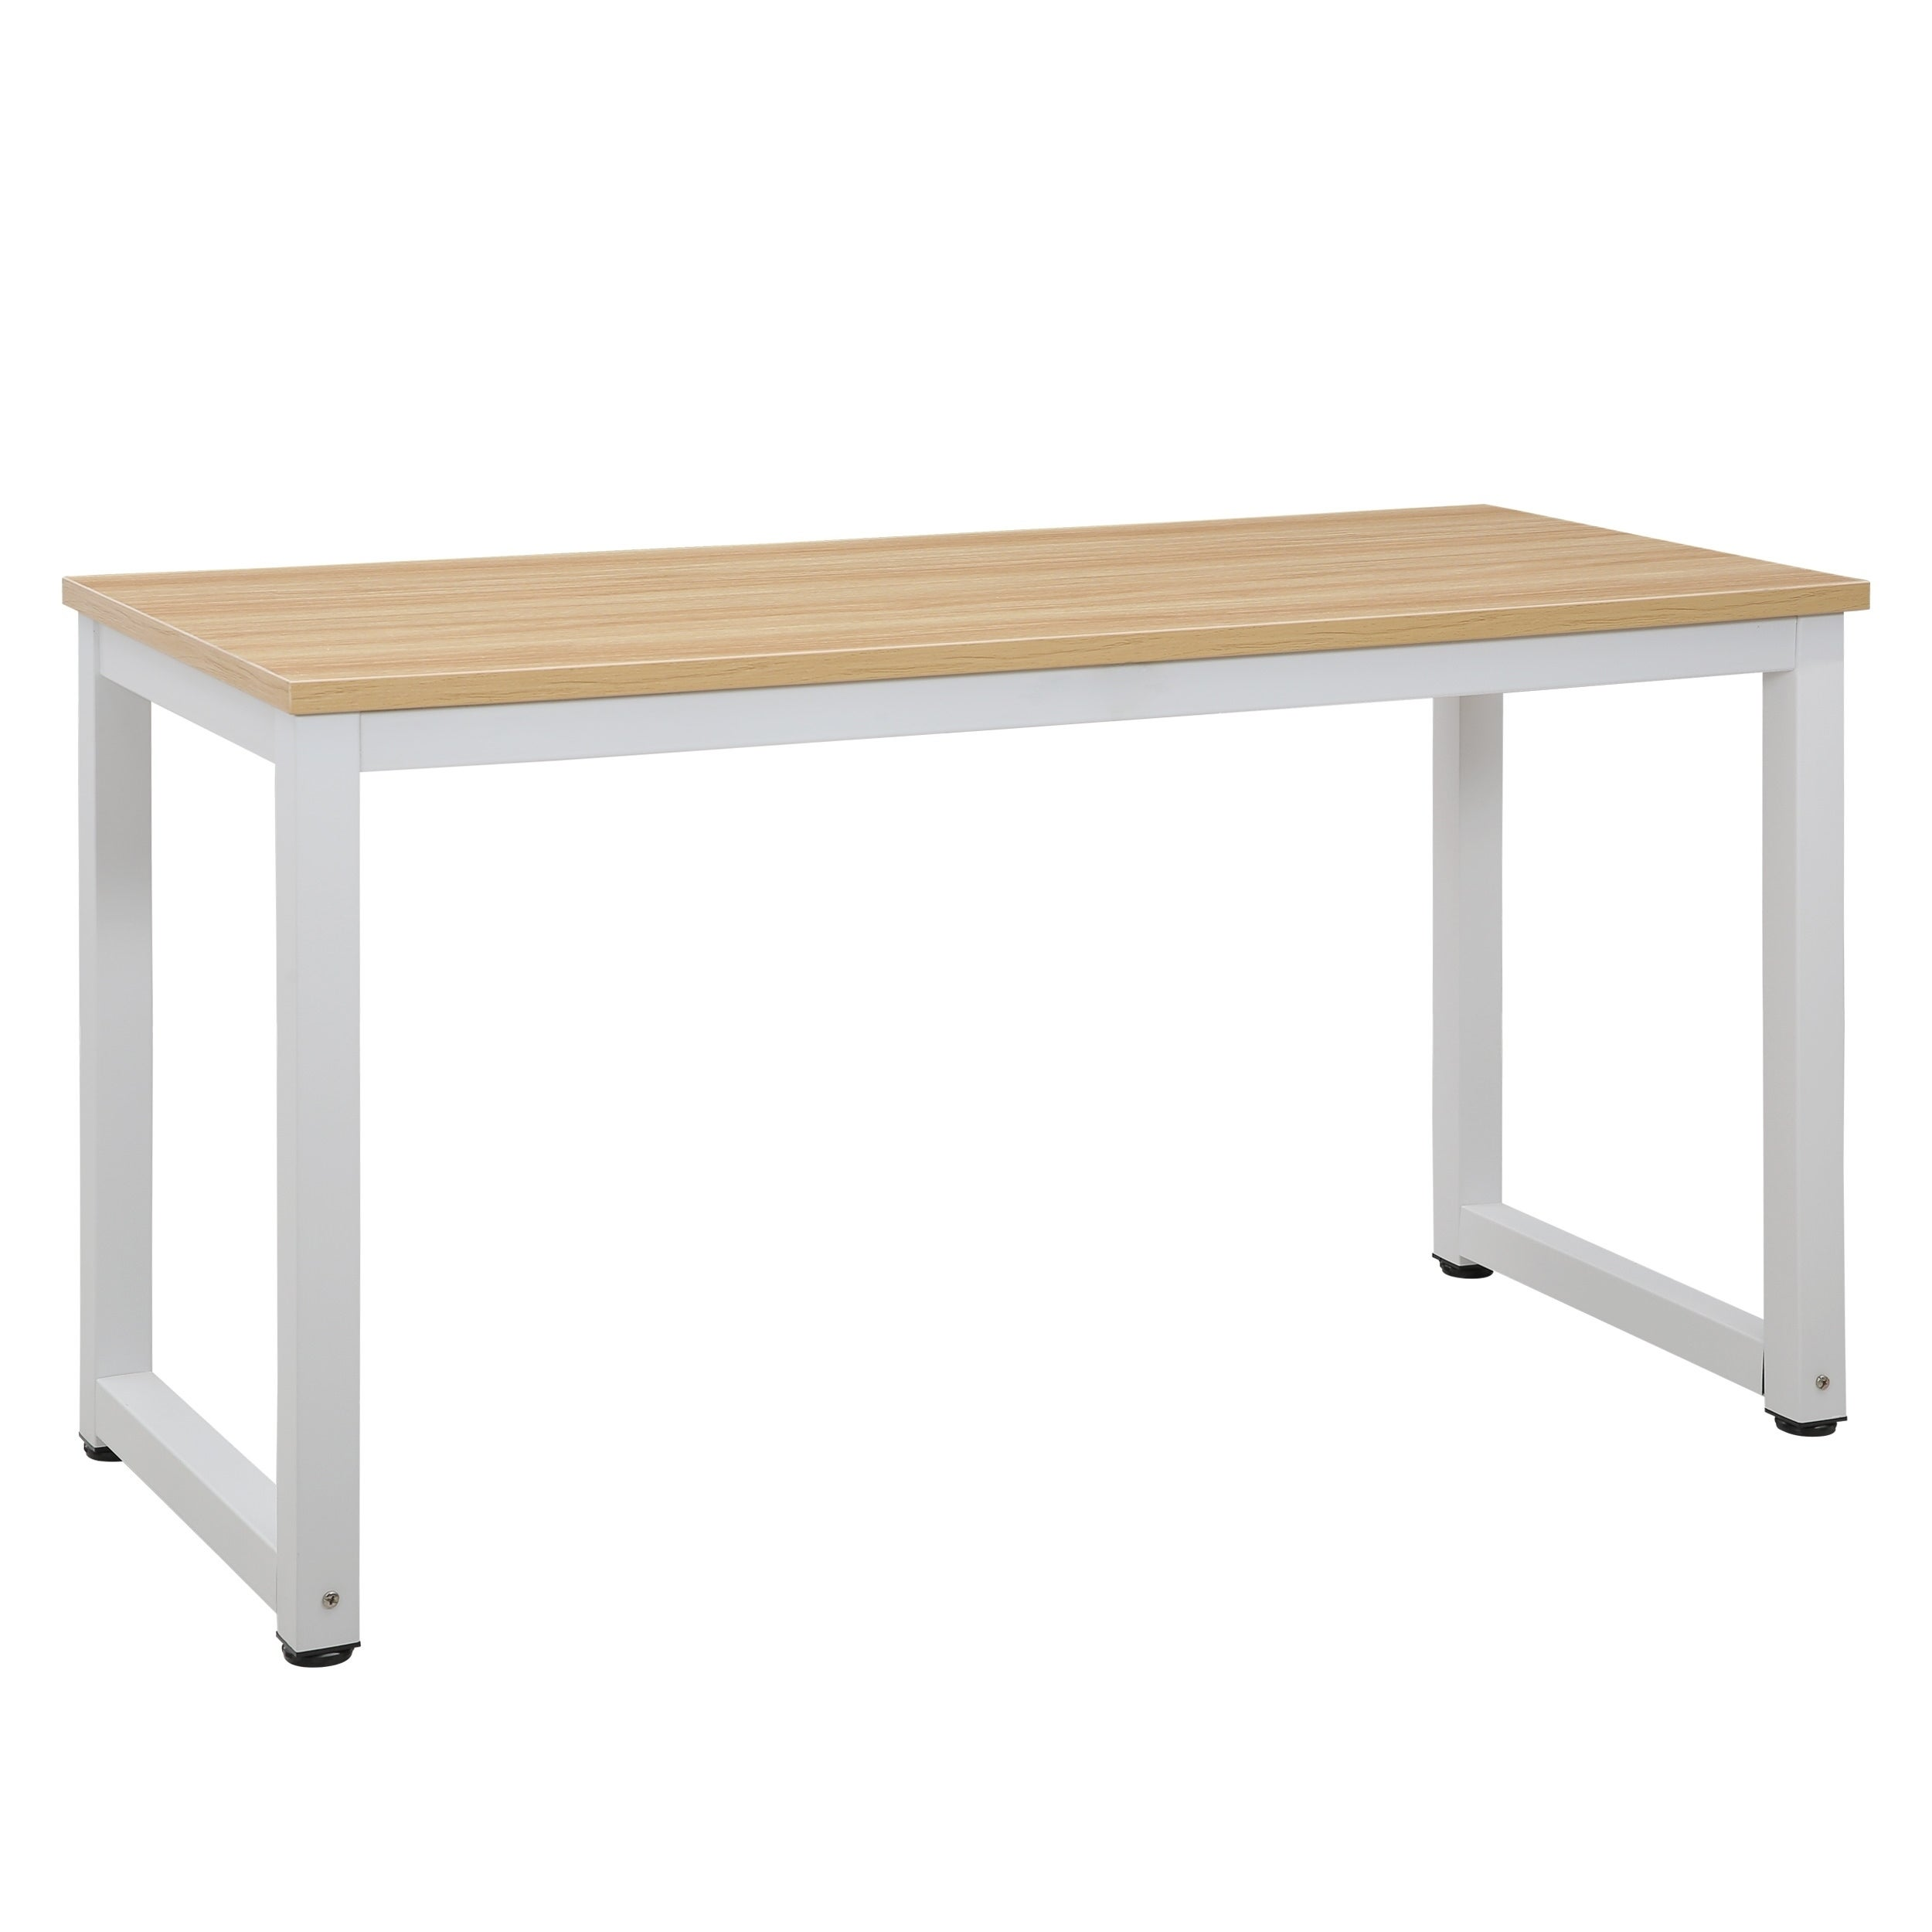 Poly And Bark Grover Natural Wood Finish Large Office Desk With White Metal Legs